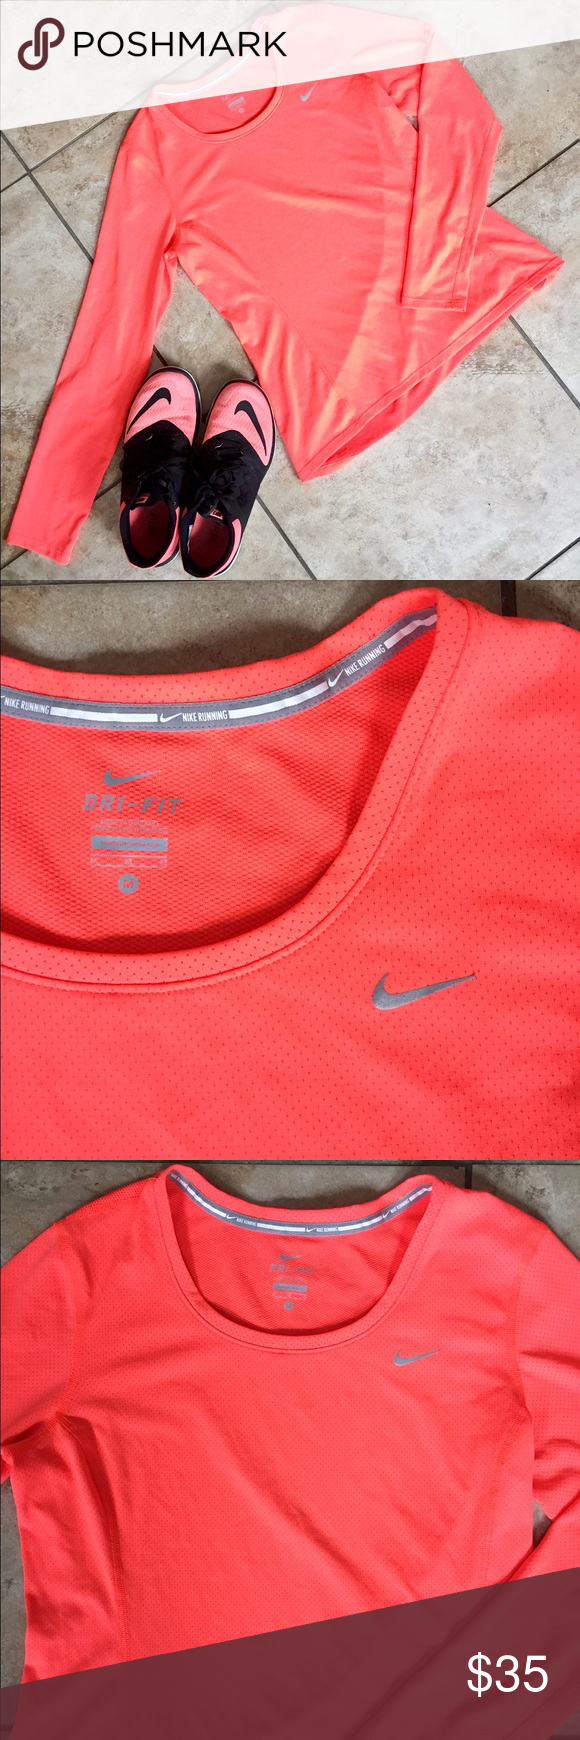 Conditioning Nike Dri Fit Color Is Like A Neon Pink Orange